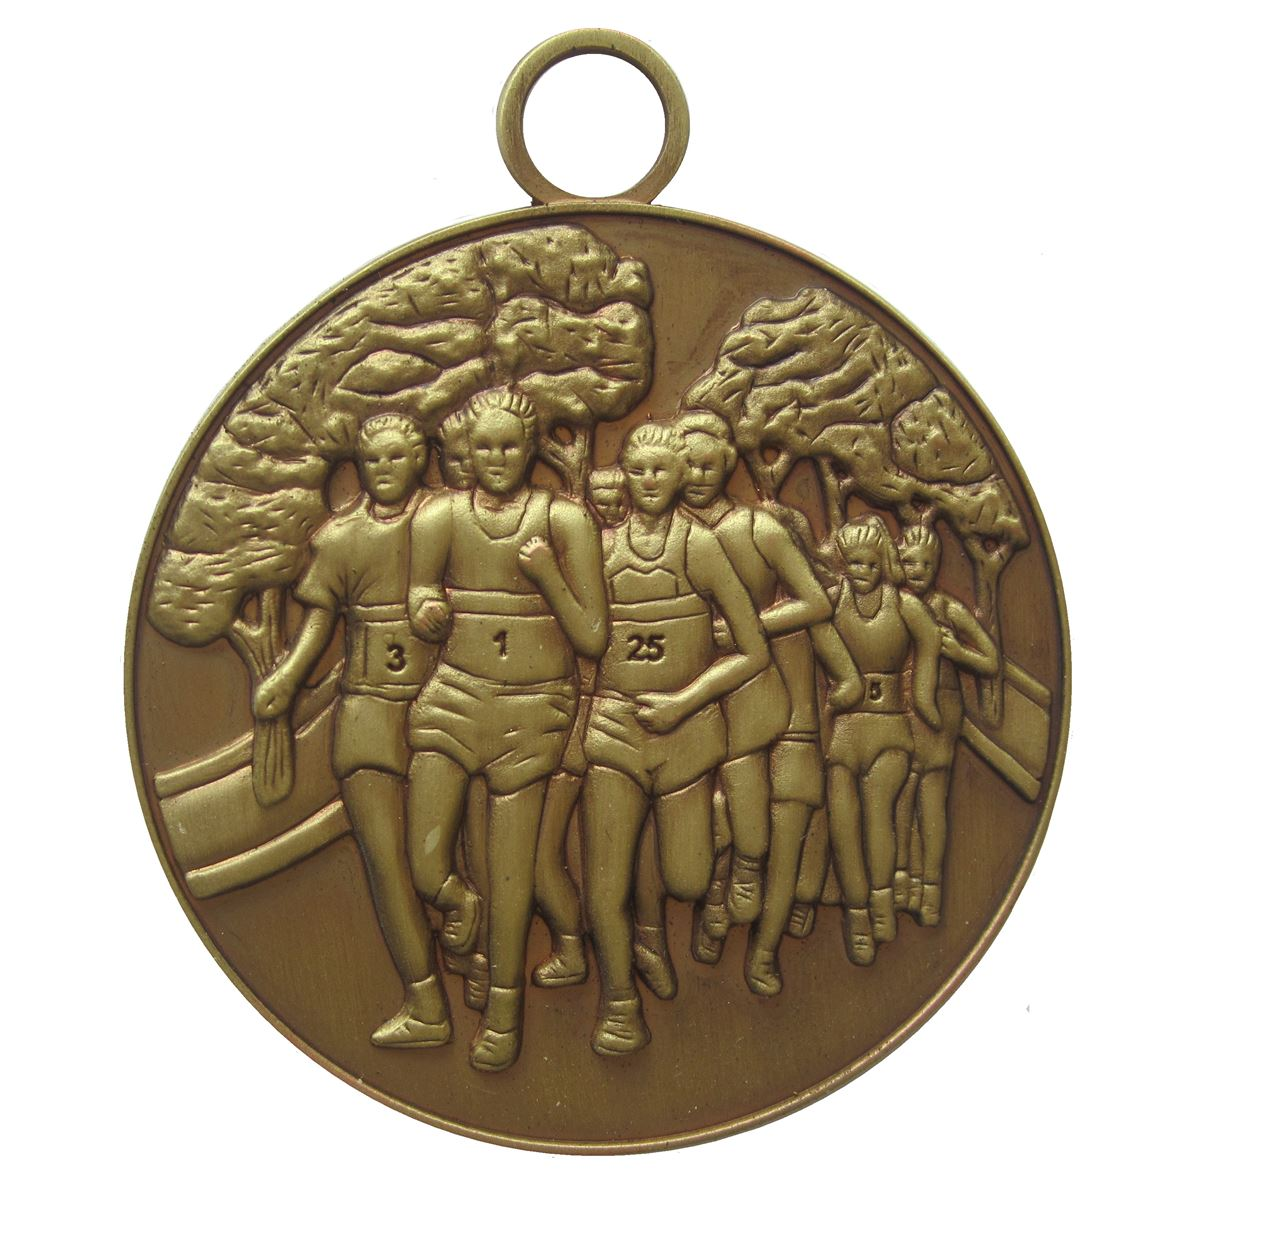 Antique Gold Economy Running Medal (size: 50mm) - MAR001E